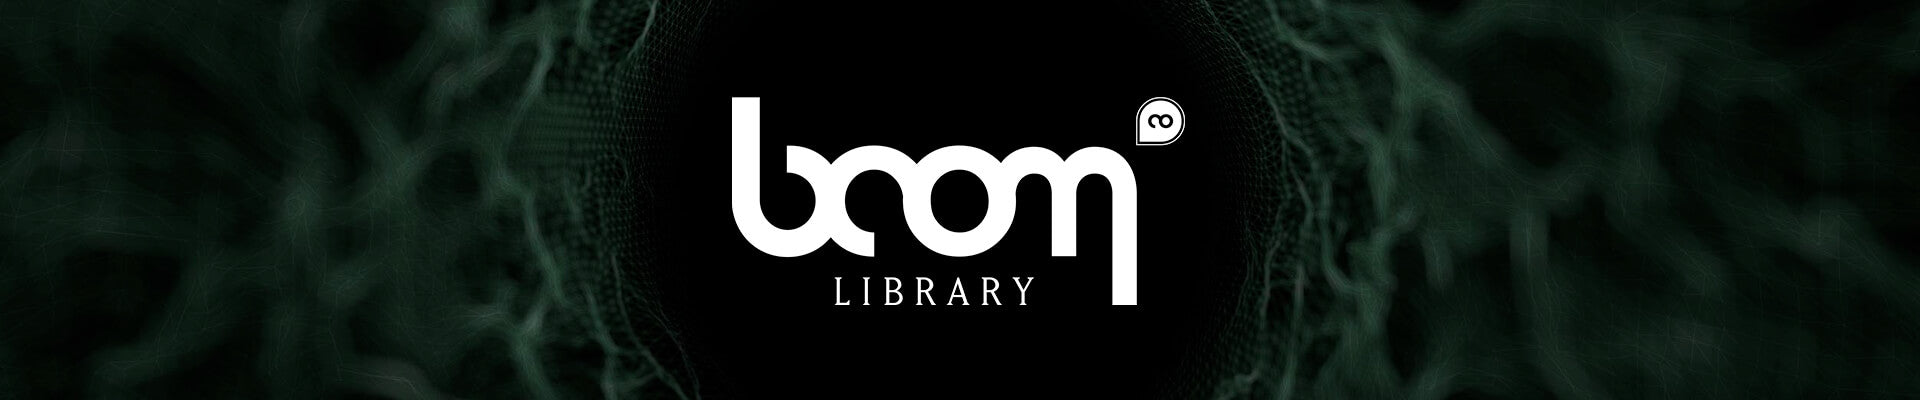 Boom Library Banner